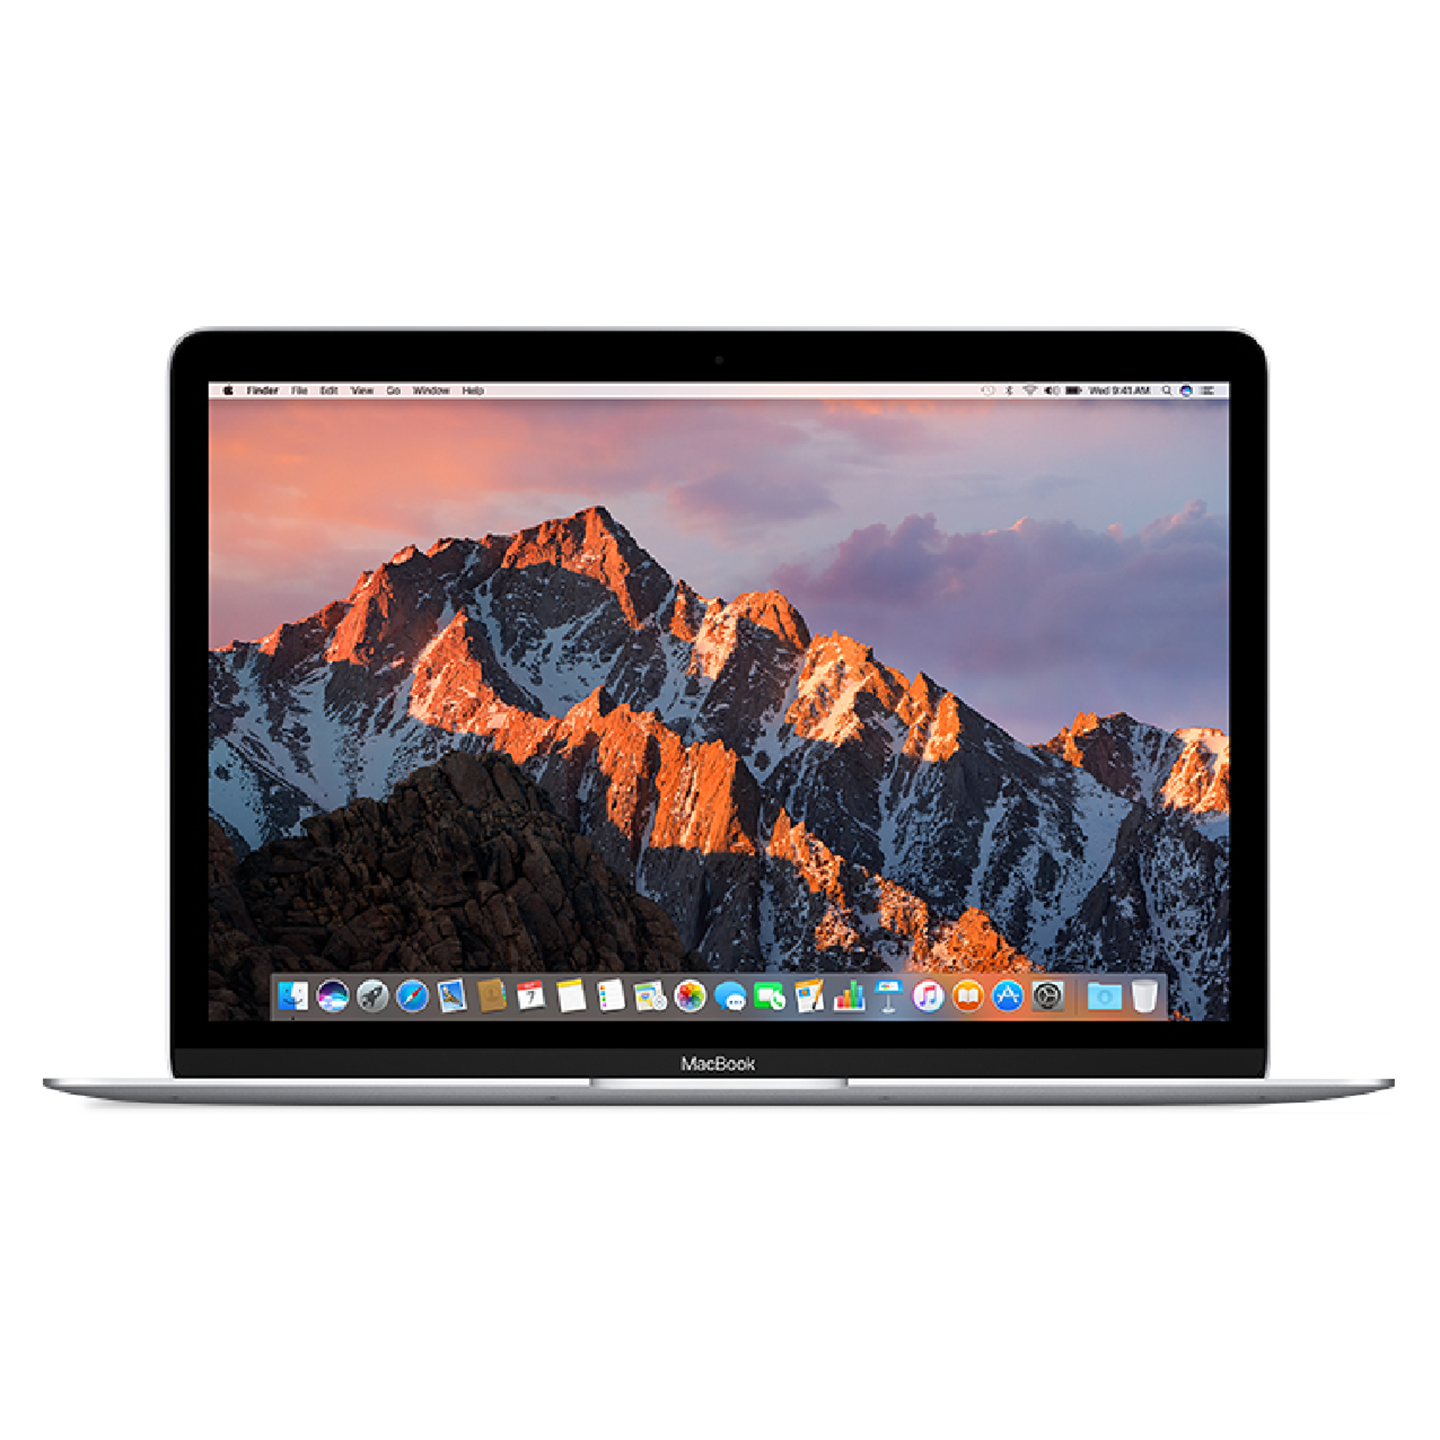 MacBook (Retina, 12-inch, Early 2016) E768